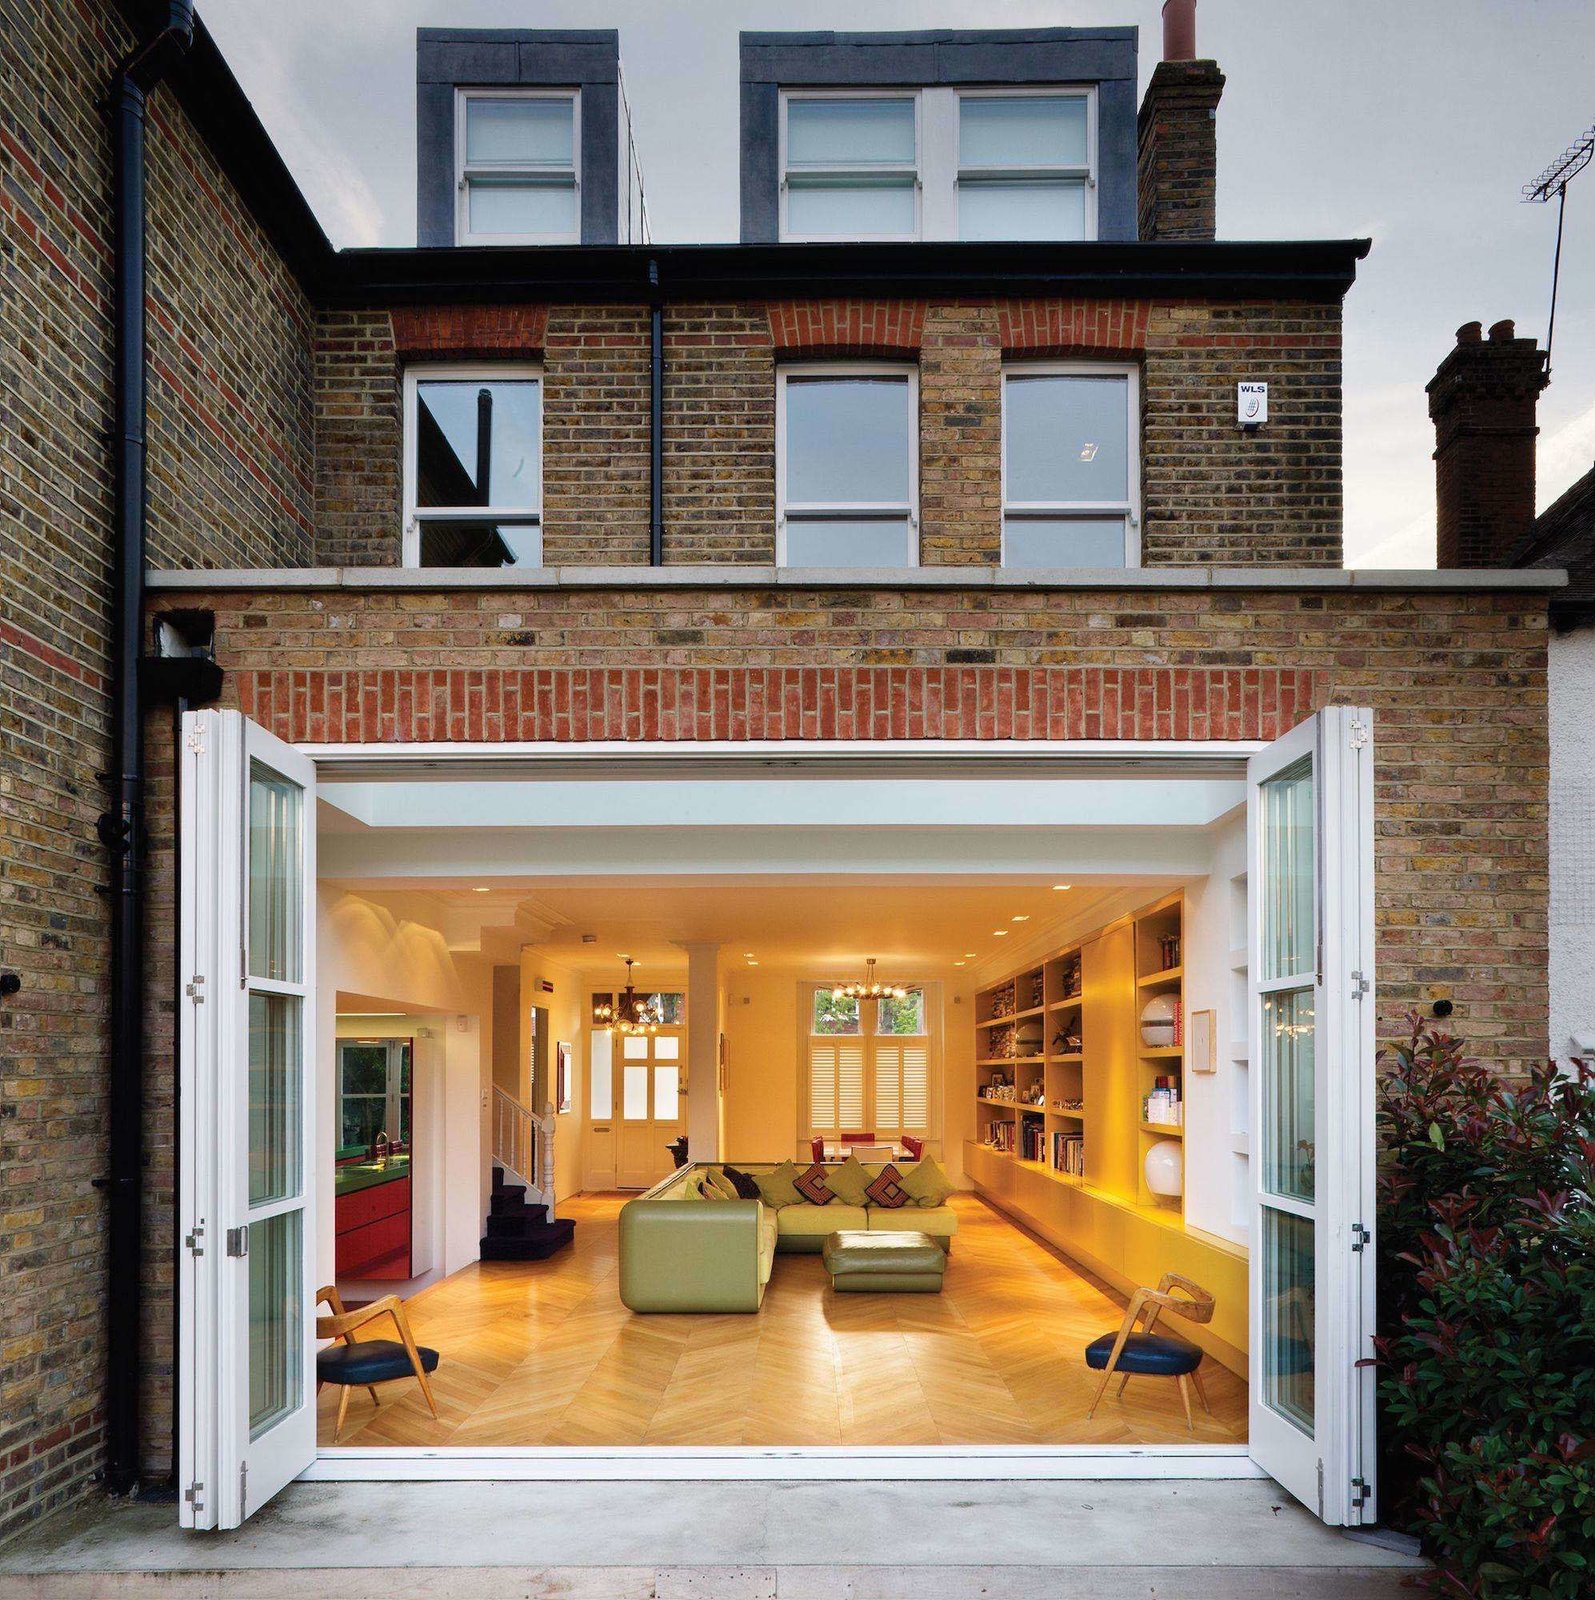 Storage, Wall Mount, Shelves, Bed, Table, Sofa, Light Hardwood, Living, and Recessed  Best Living Wall Mount Photos from Bright Bauhaus Colors Fill This Brick Edwardian House in London